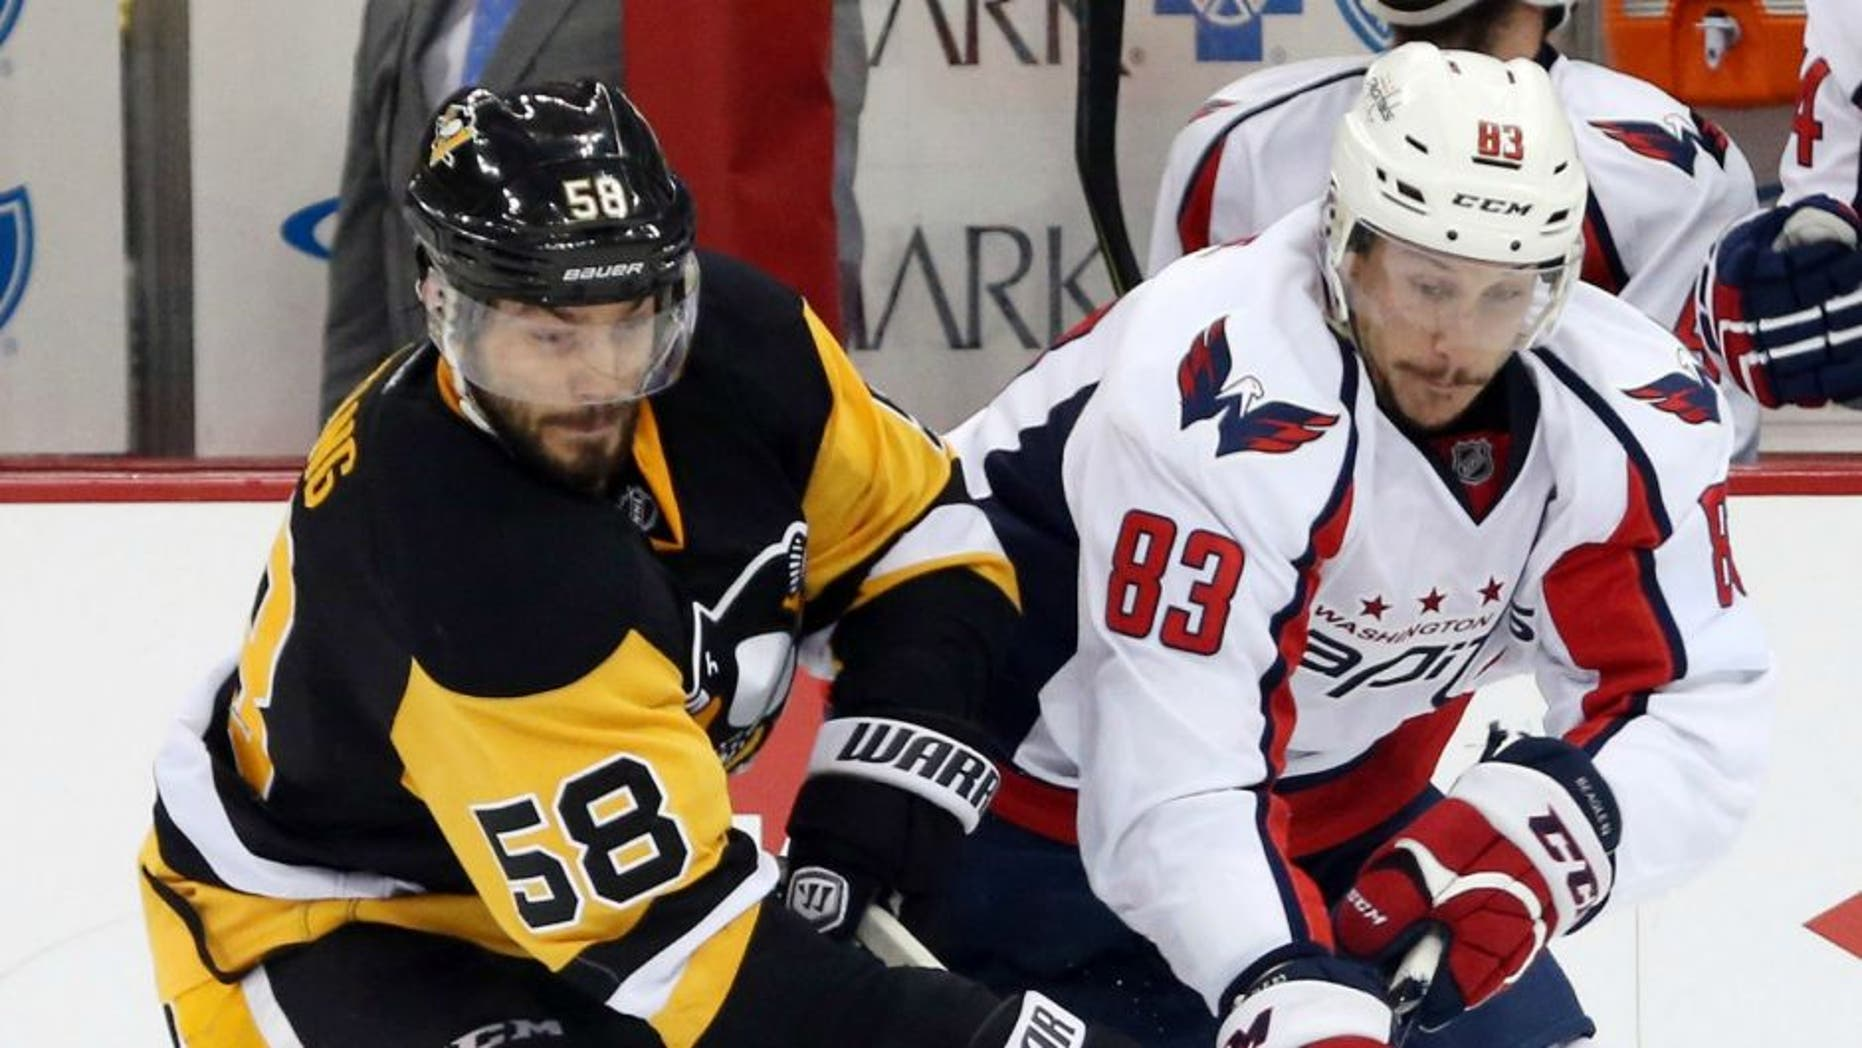 May 2, 2016; Pittsburgh, PA, USA; Pittsburgh Penguins defenseman Kris Letang (58) and Washington Capitals center Jay Beagle (83) chase the puck during the second period in game three of the second round of the 2016 Stanley Cup Playoffs at the CONSOL Energy Center. The Pens won 3-2. Mandatory Credit: Charles LeClaire-USA TODAY Sports